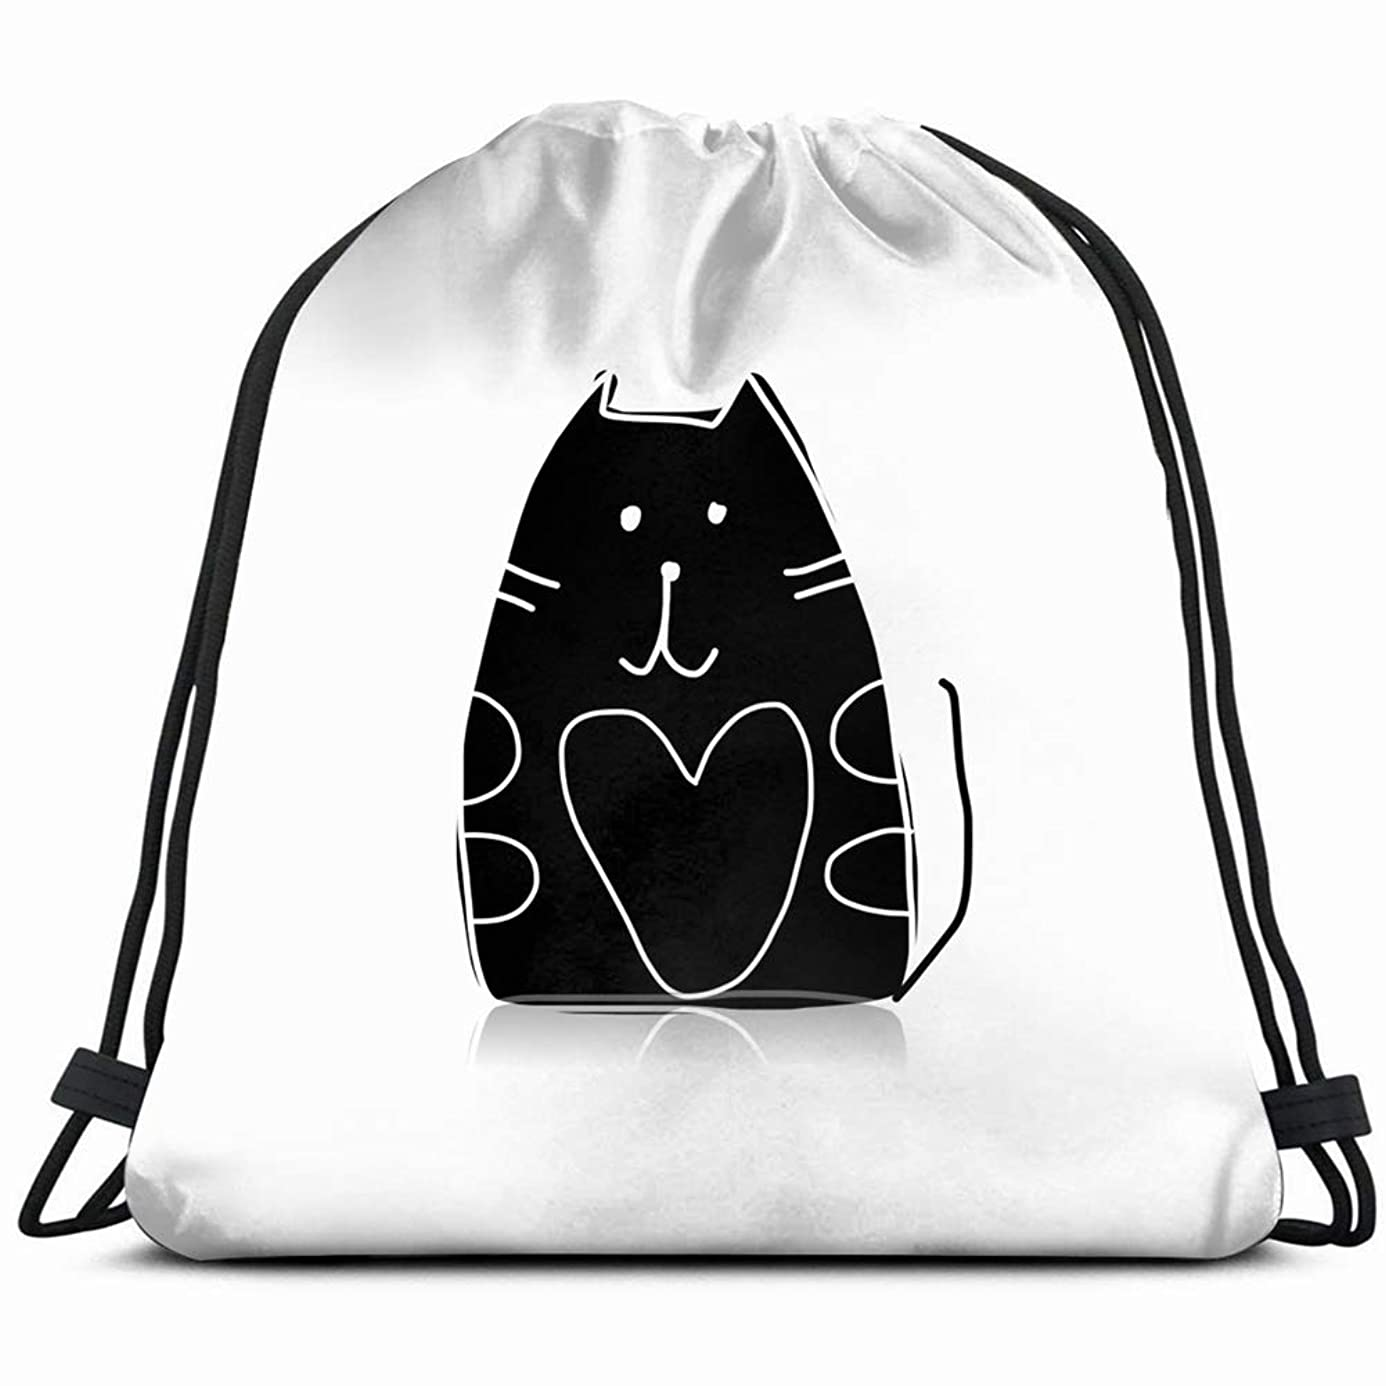 black cat silhouette sketch your design animals wildlife the arts Drawstring Backpack Bag Gym sack Sport Beach Daypack for Girls Men & Women Teen Dance Bag Cycling Hiking Team Training 17X14 Inch